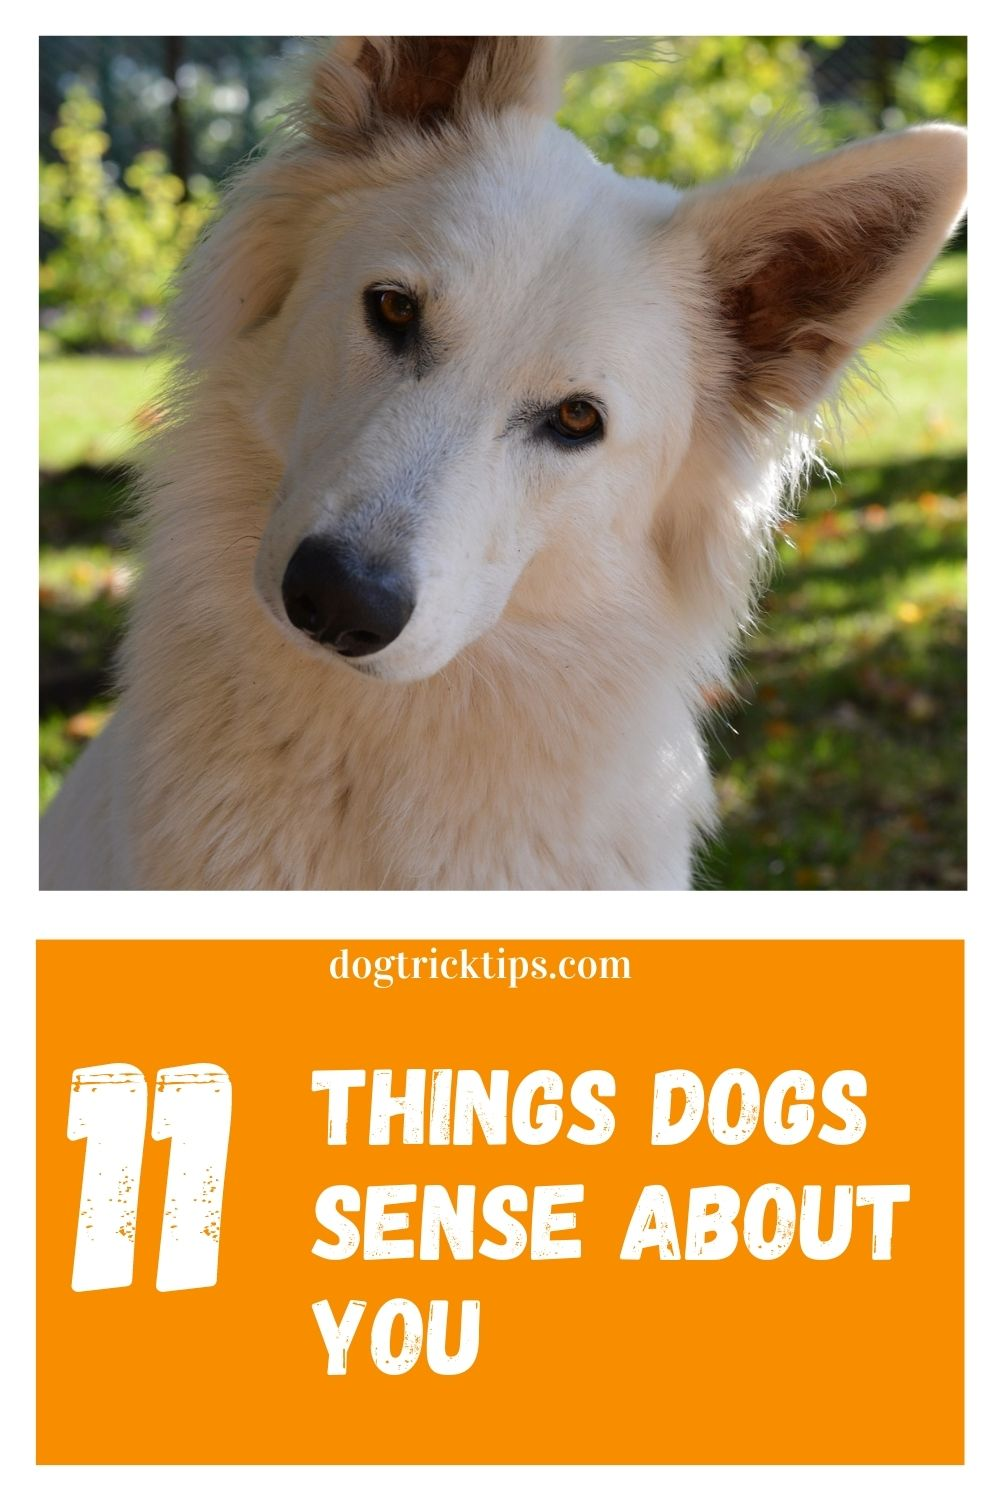 11 Things Dogs Sense About You